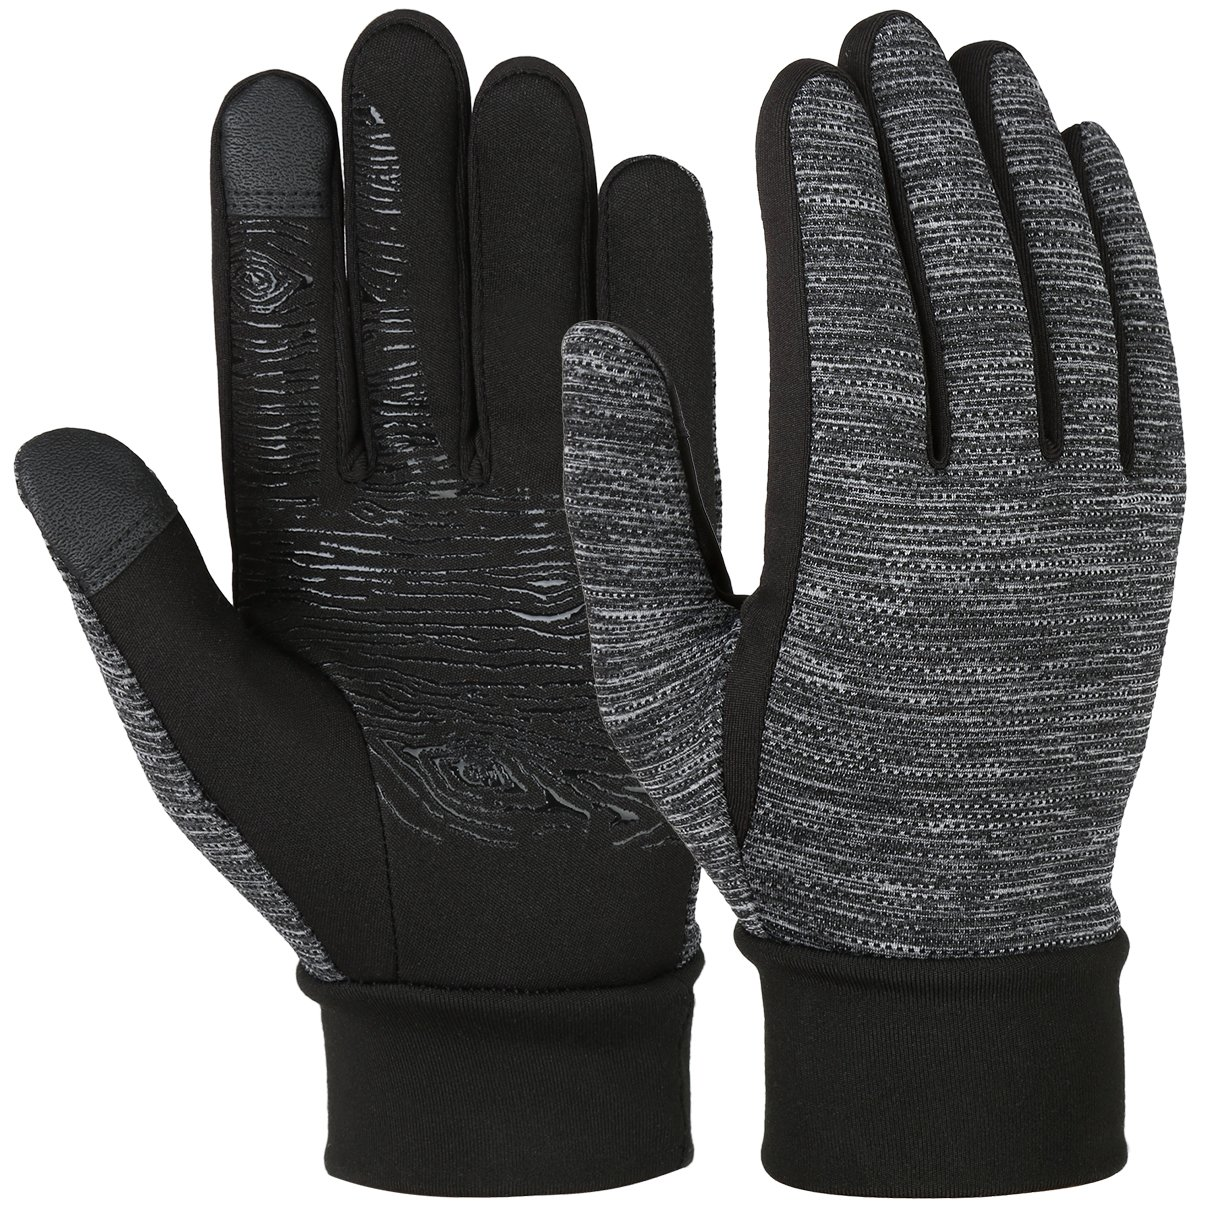 VBG VBIGER Winter Touch Screen Driving Gloves